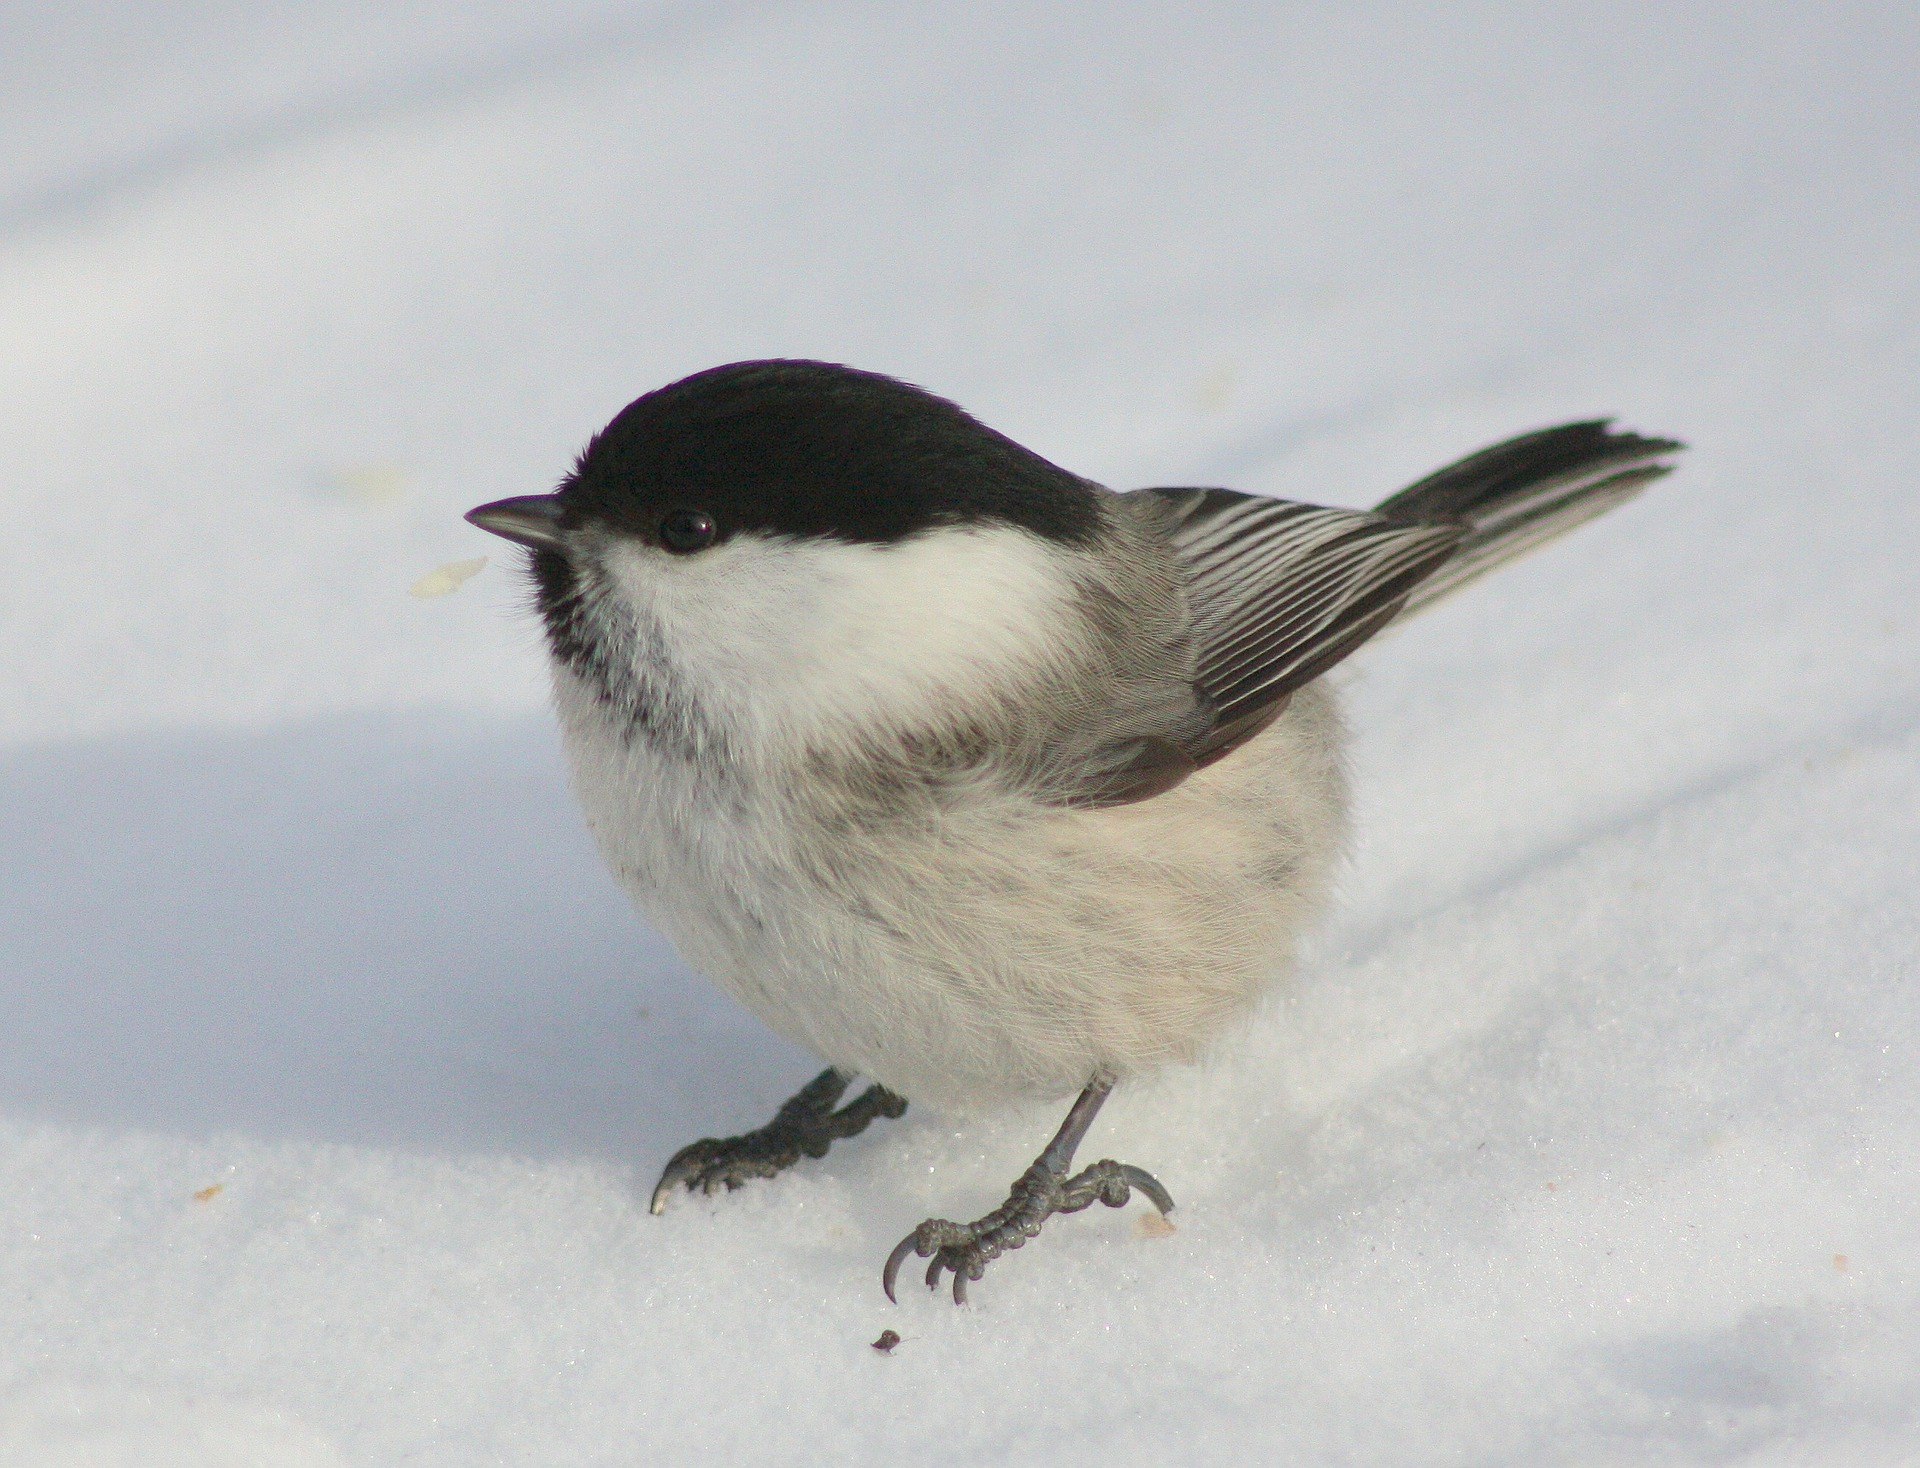 willow-tit-100293_1920 Willow tit Image by David Mark from Pixabay.jpg